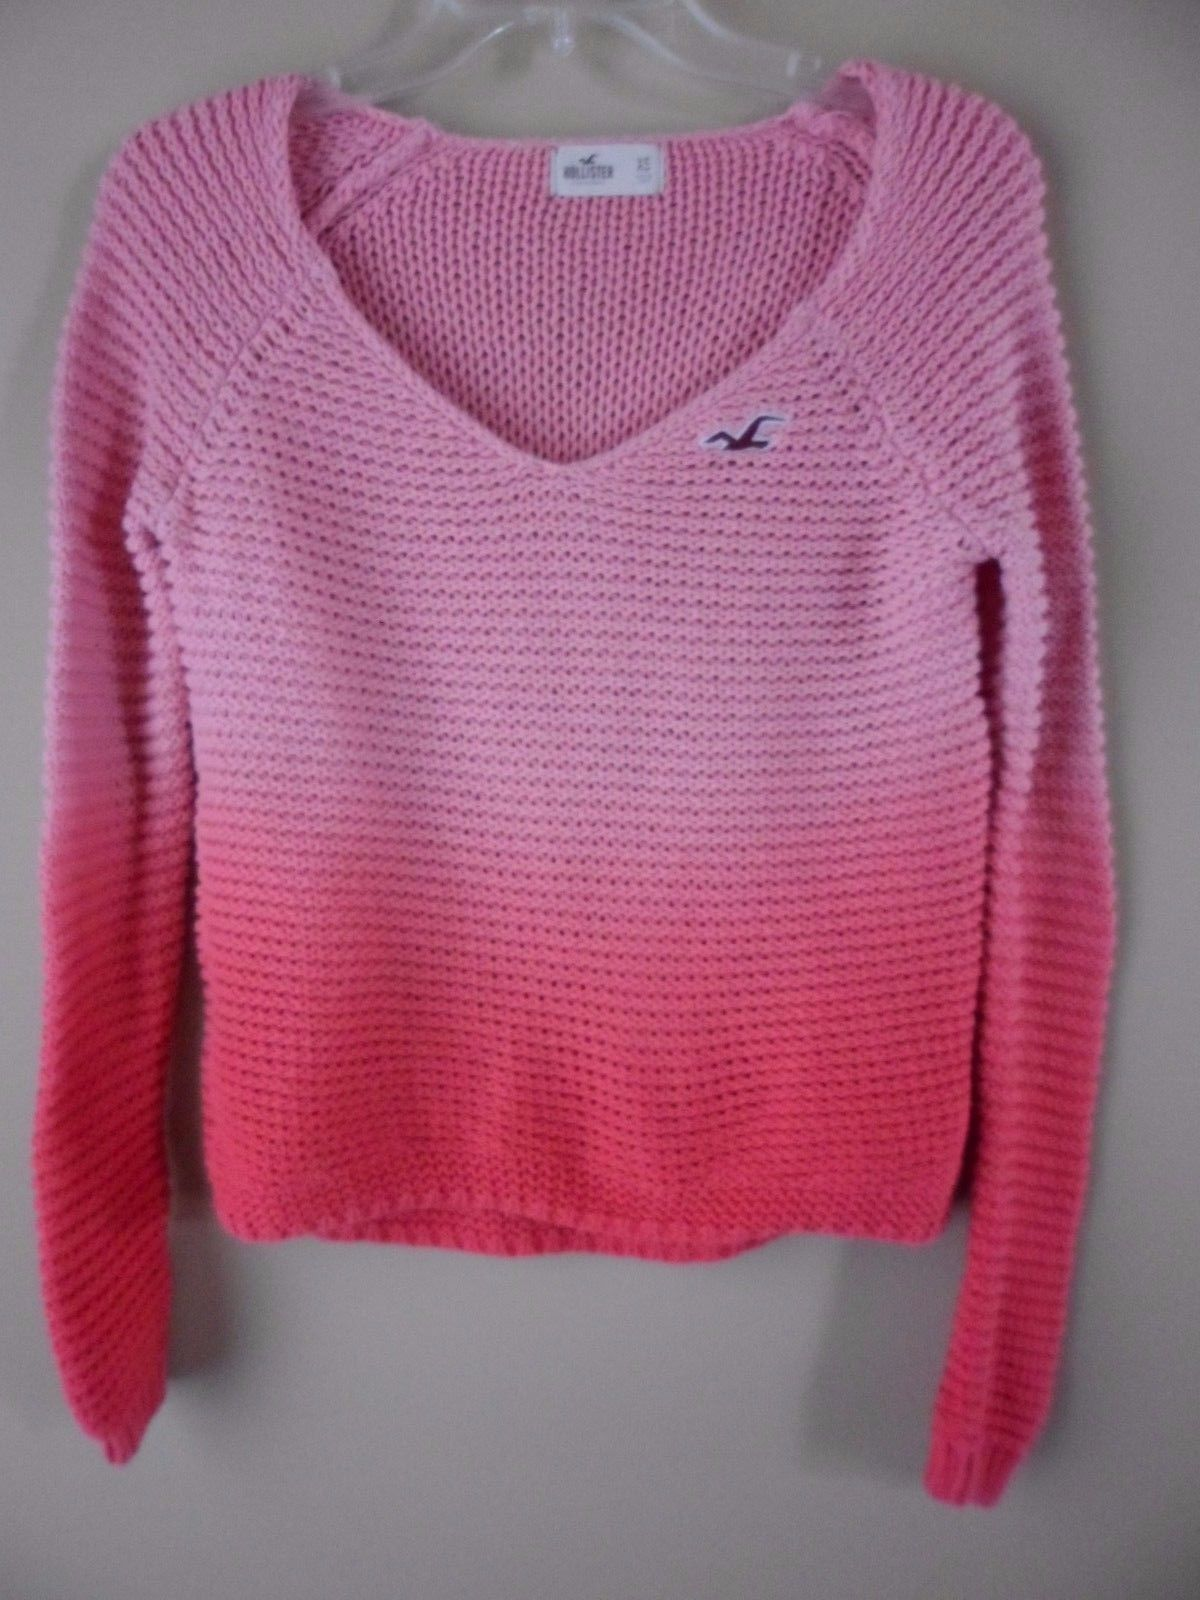 Primary image for HOLLISTER ABERCROMBIE Peach Mellon OMBRE SWEATER Size XS